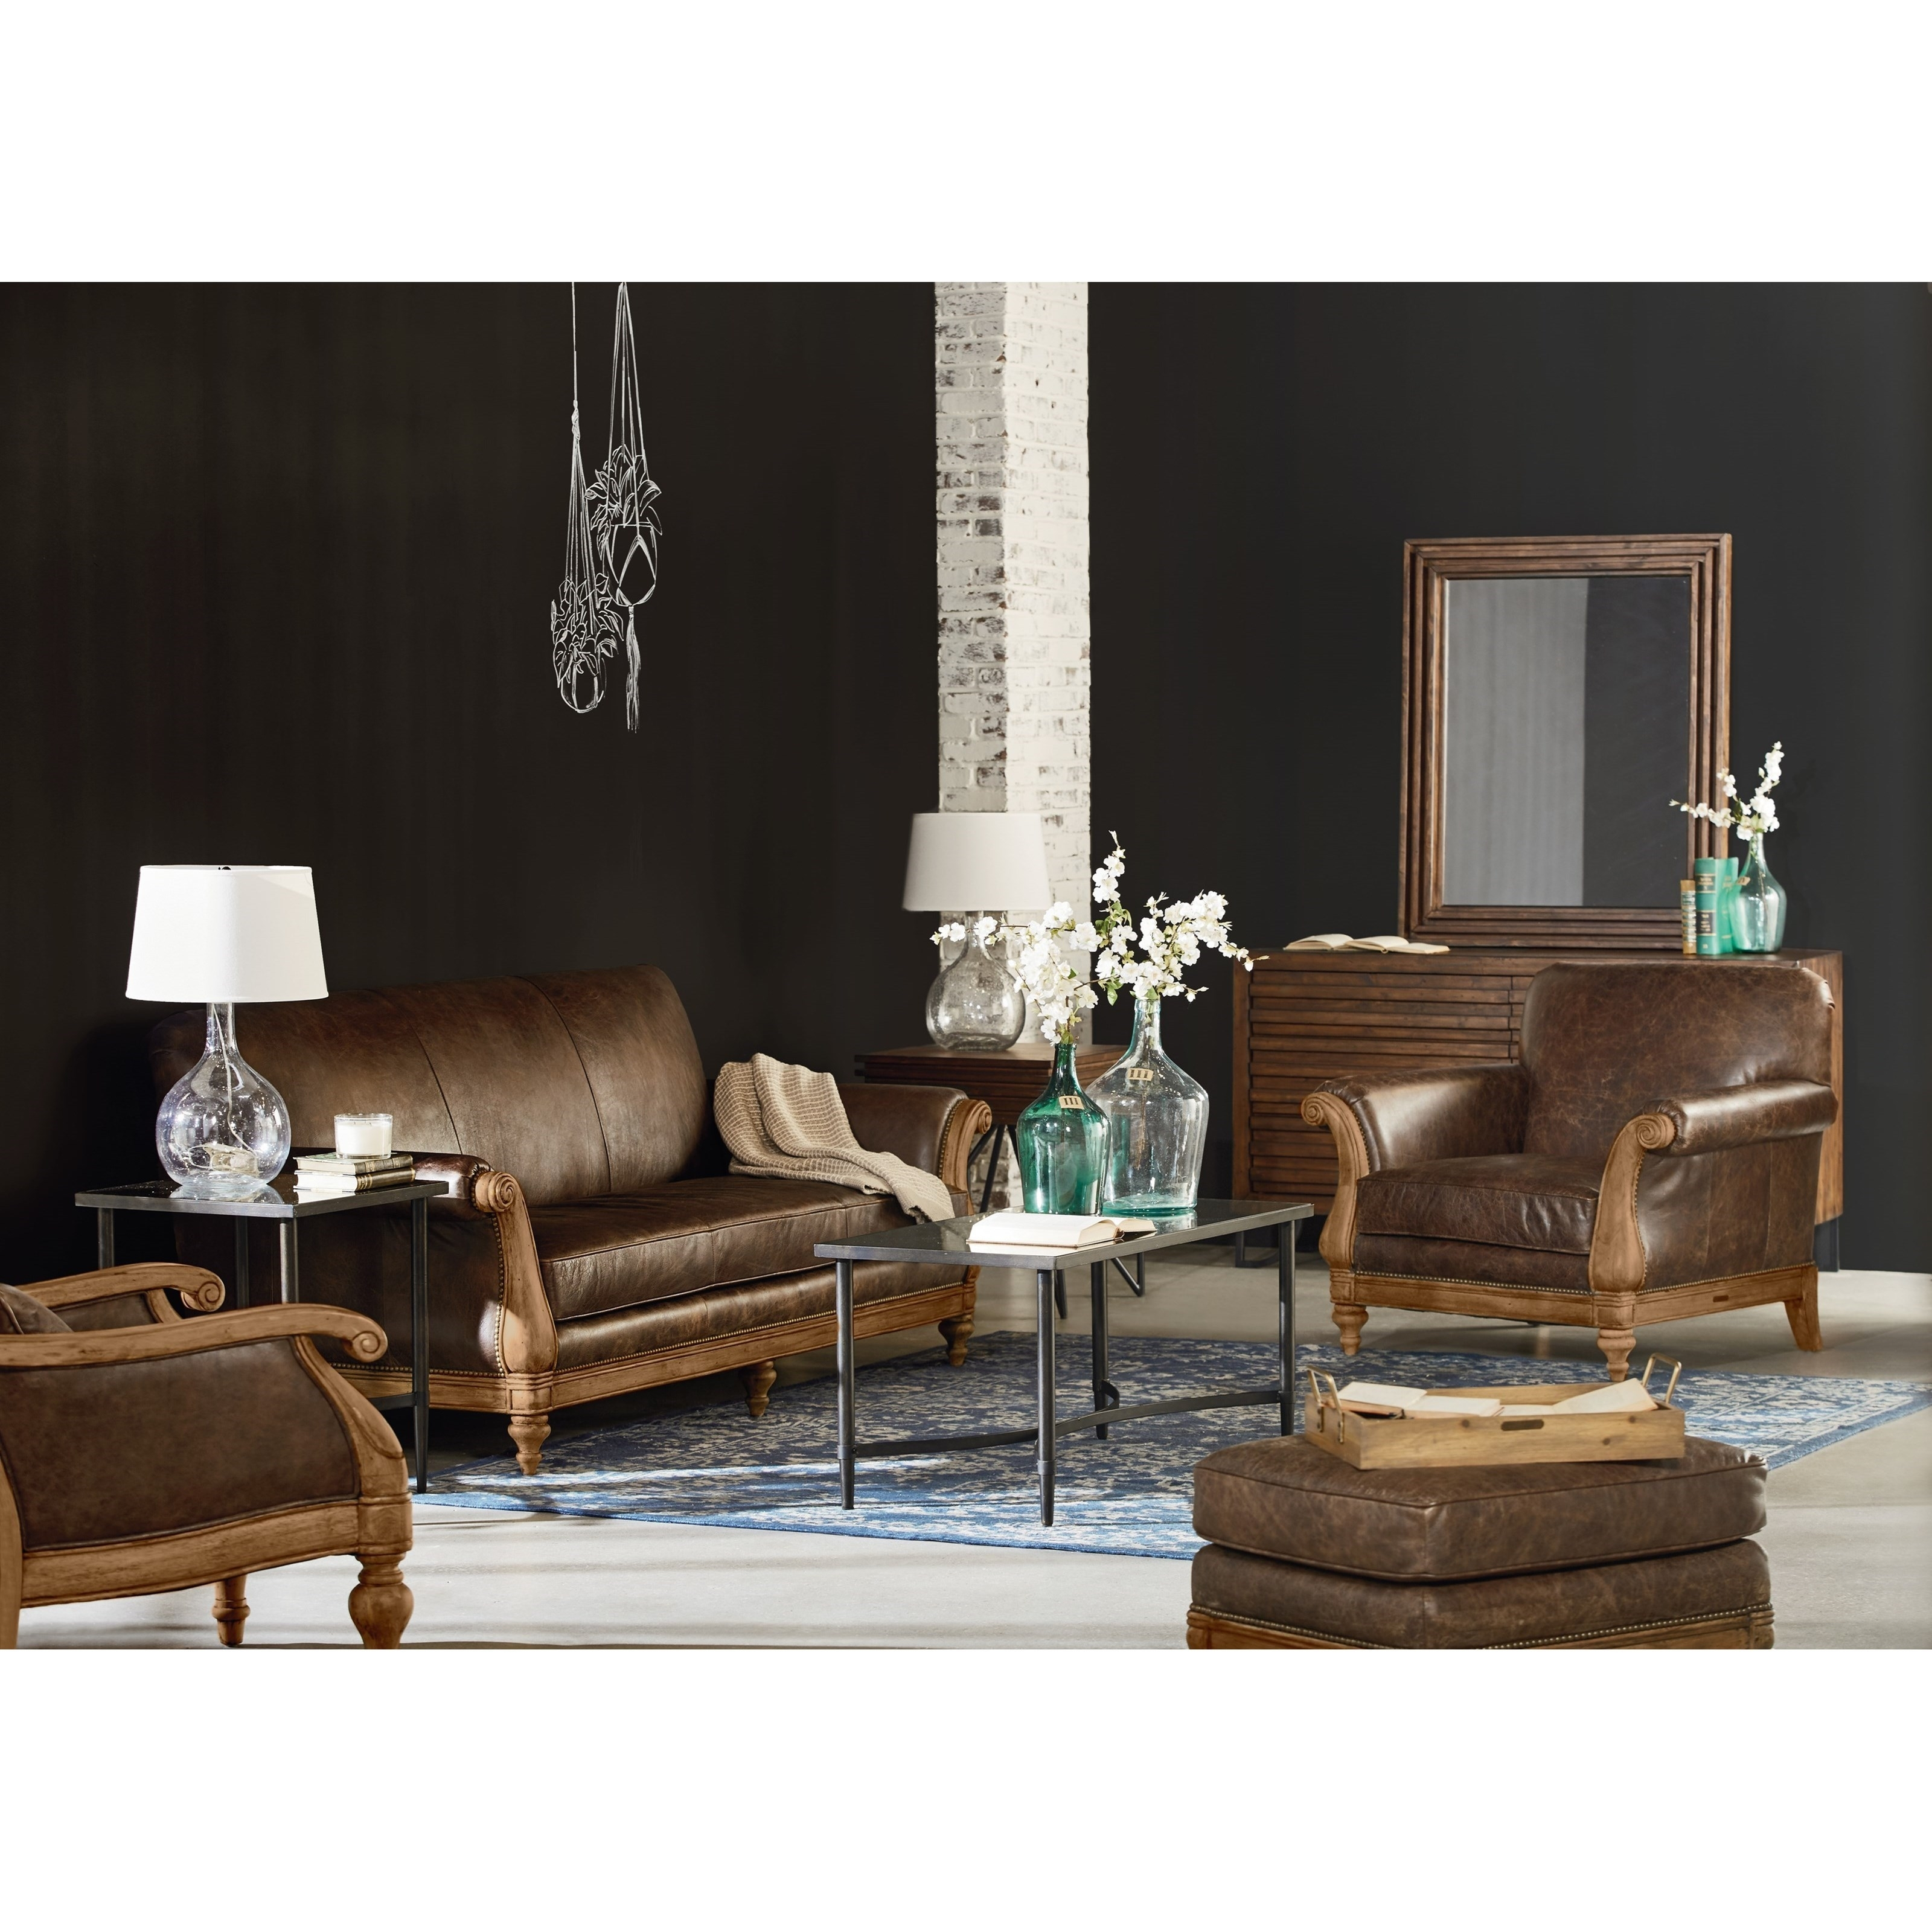 Magnolia Furniture Leather Sofa | Baci Living Room Regarding Magnolia Home Homestead 4 Piece Sectionals By Joanna Gaines (View 19 of 25)